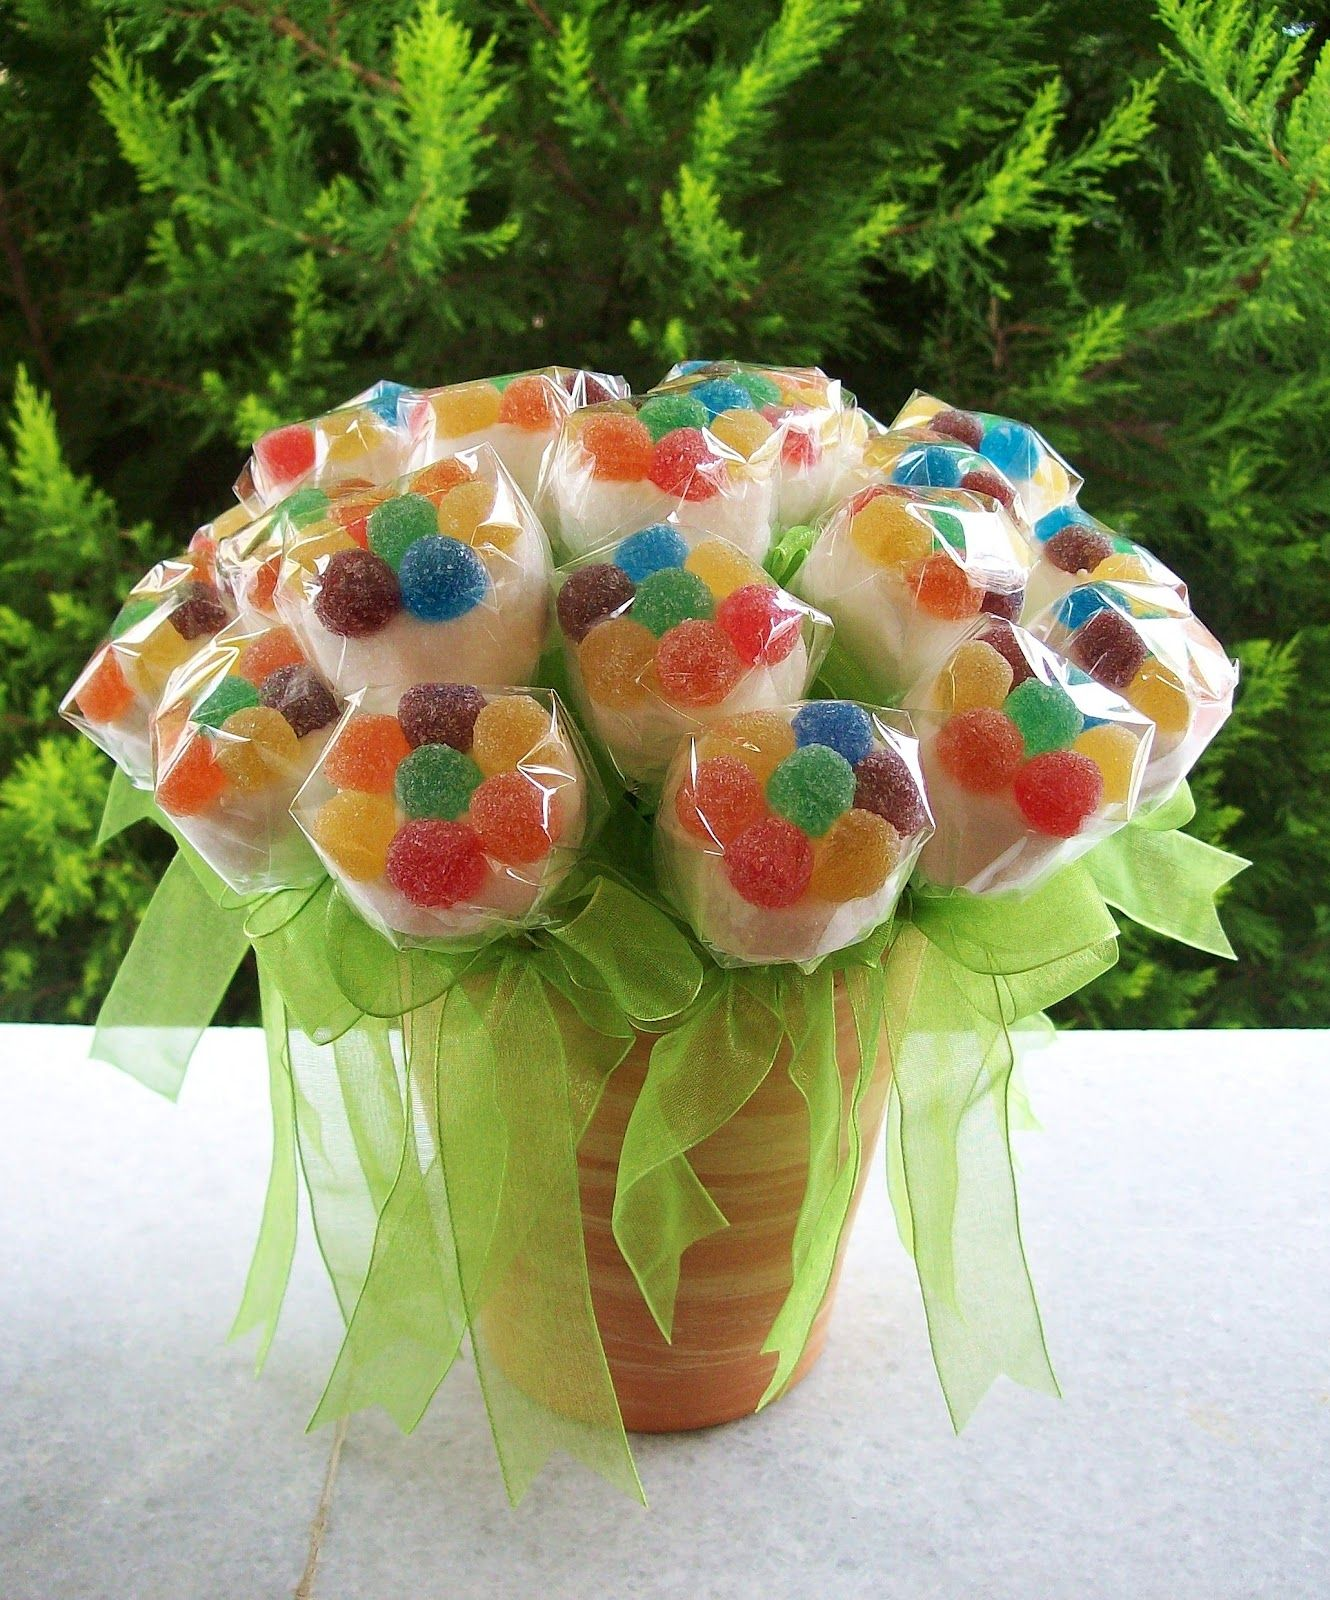 Pin by isaura pires on cumpleaos pinterest bar candy bouquet candy s candy party sweet trees candy crafts candy decorations candy bouquet ideas para fiestas marshmallows chocolate bouquet izmirmasajfo Choice Image